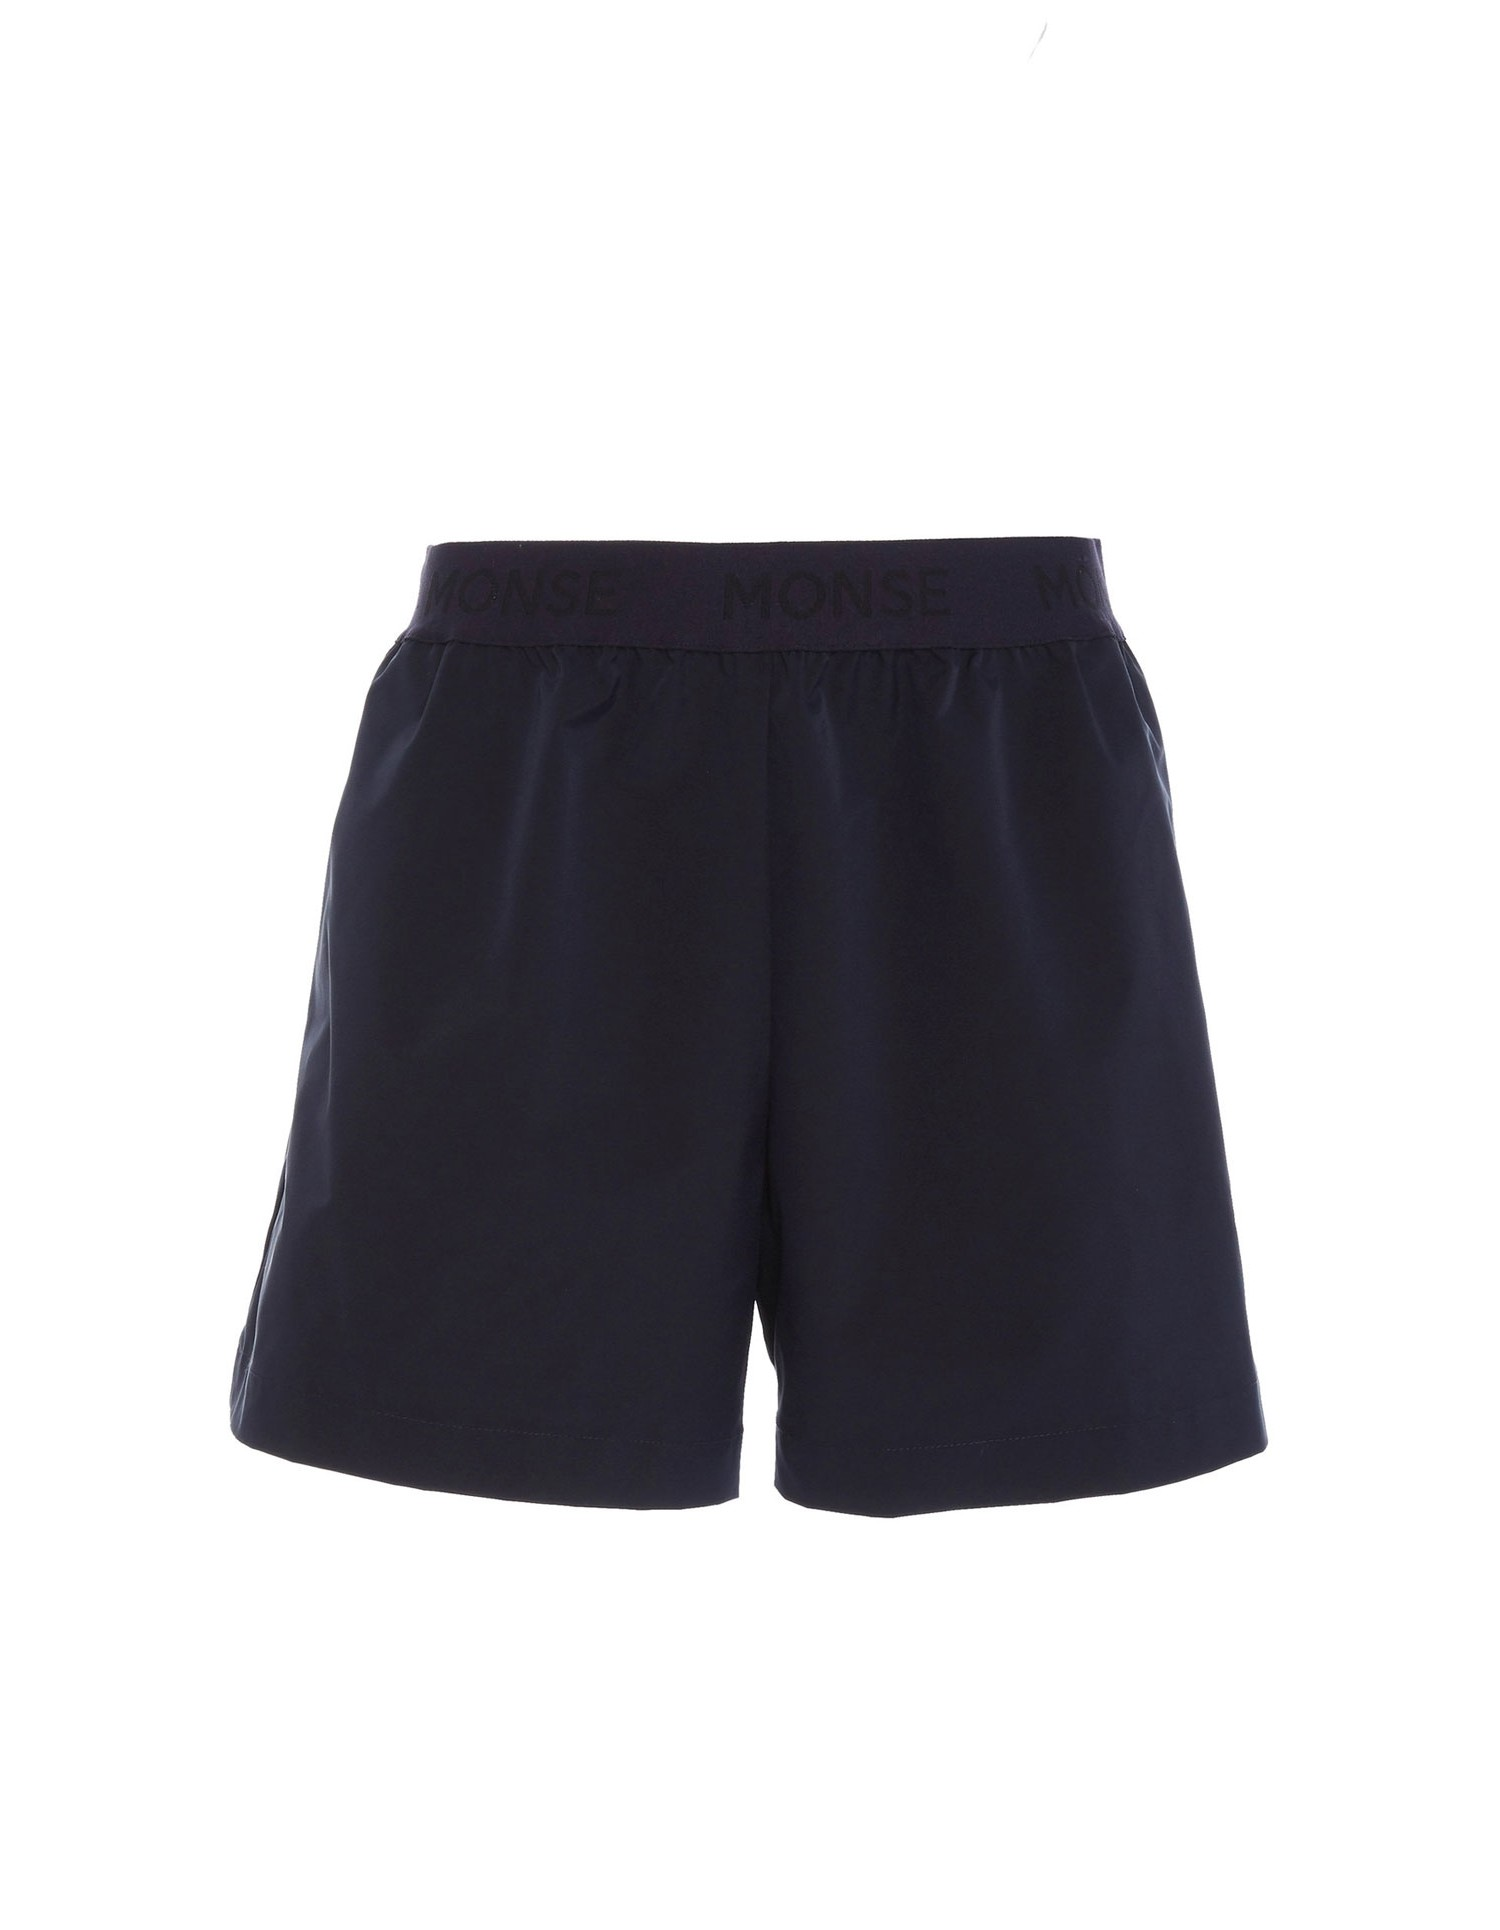 Monse Women's Jersey Shorts in Navy Front